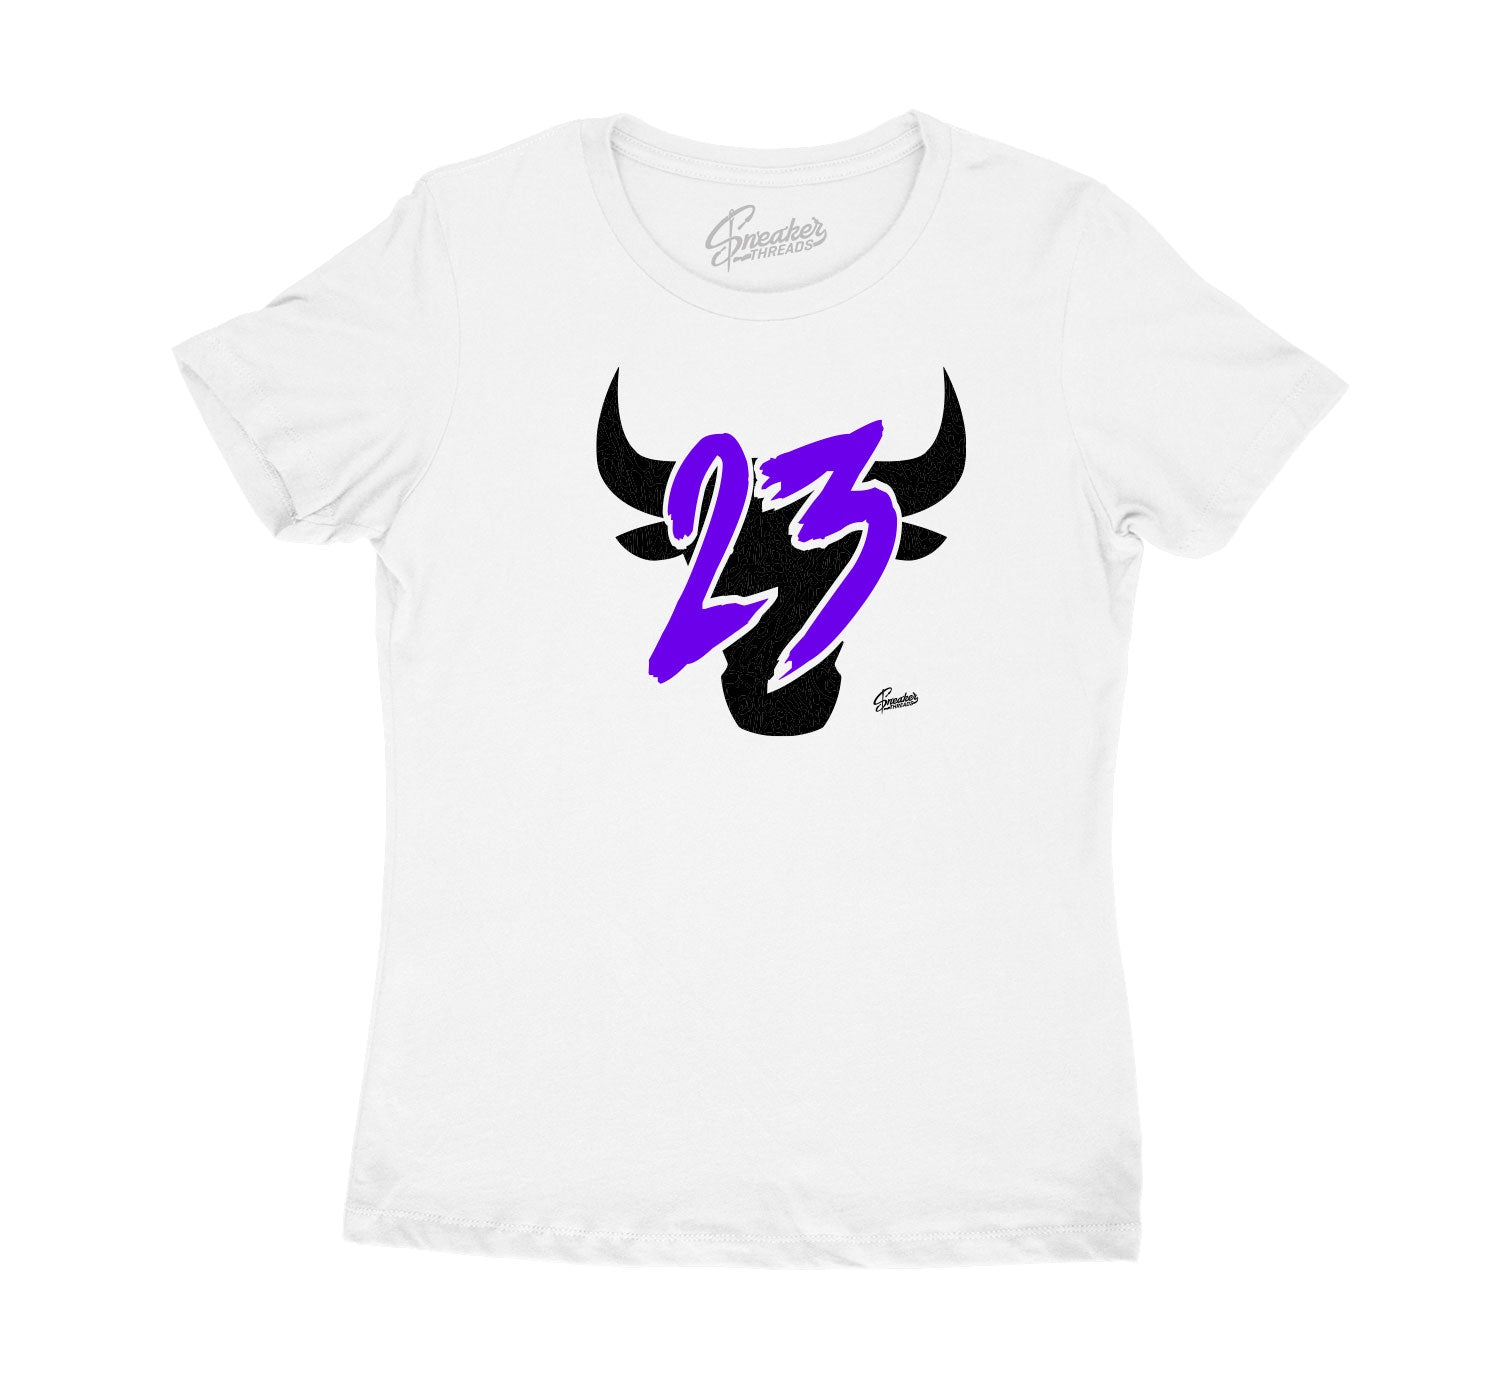 Purple Metallic Jordan 4 sneaker collection matching t shirt collection